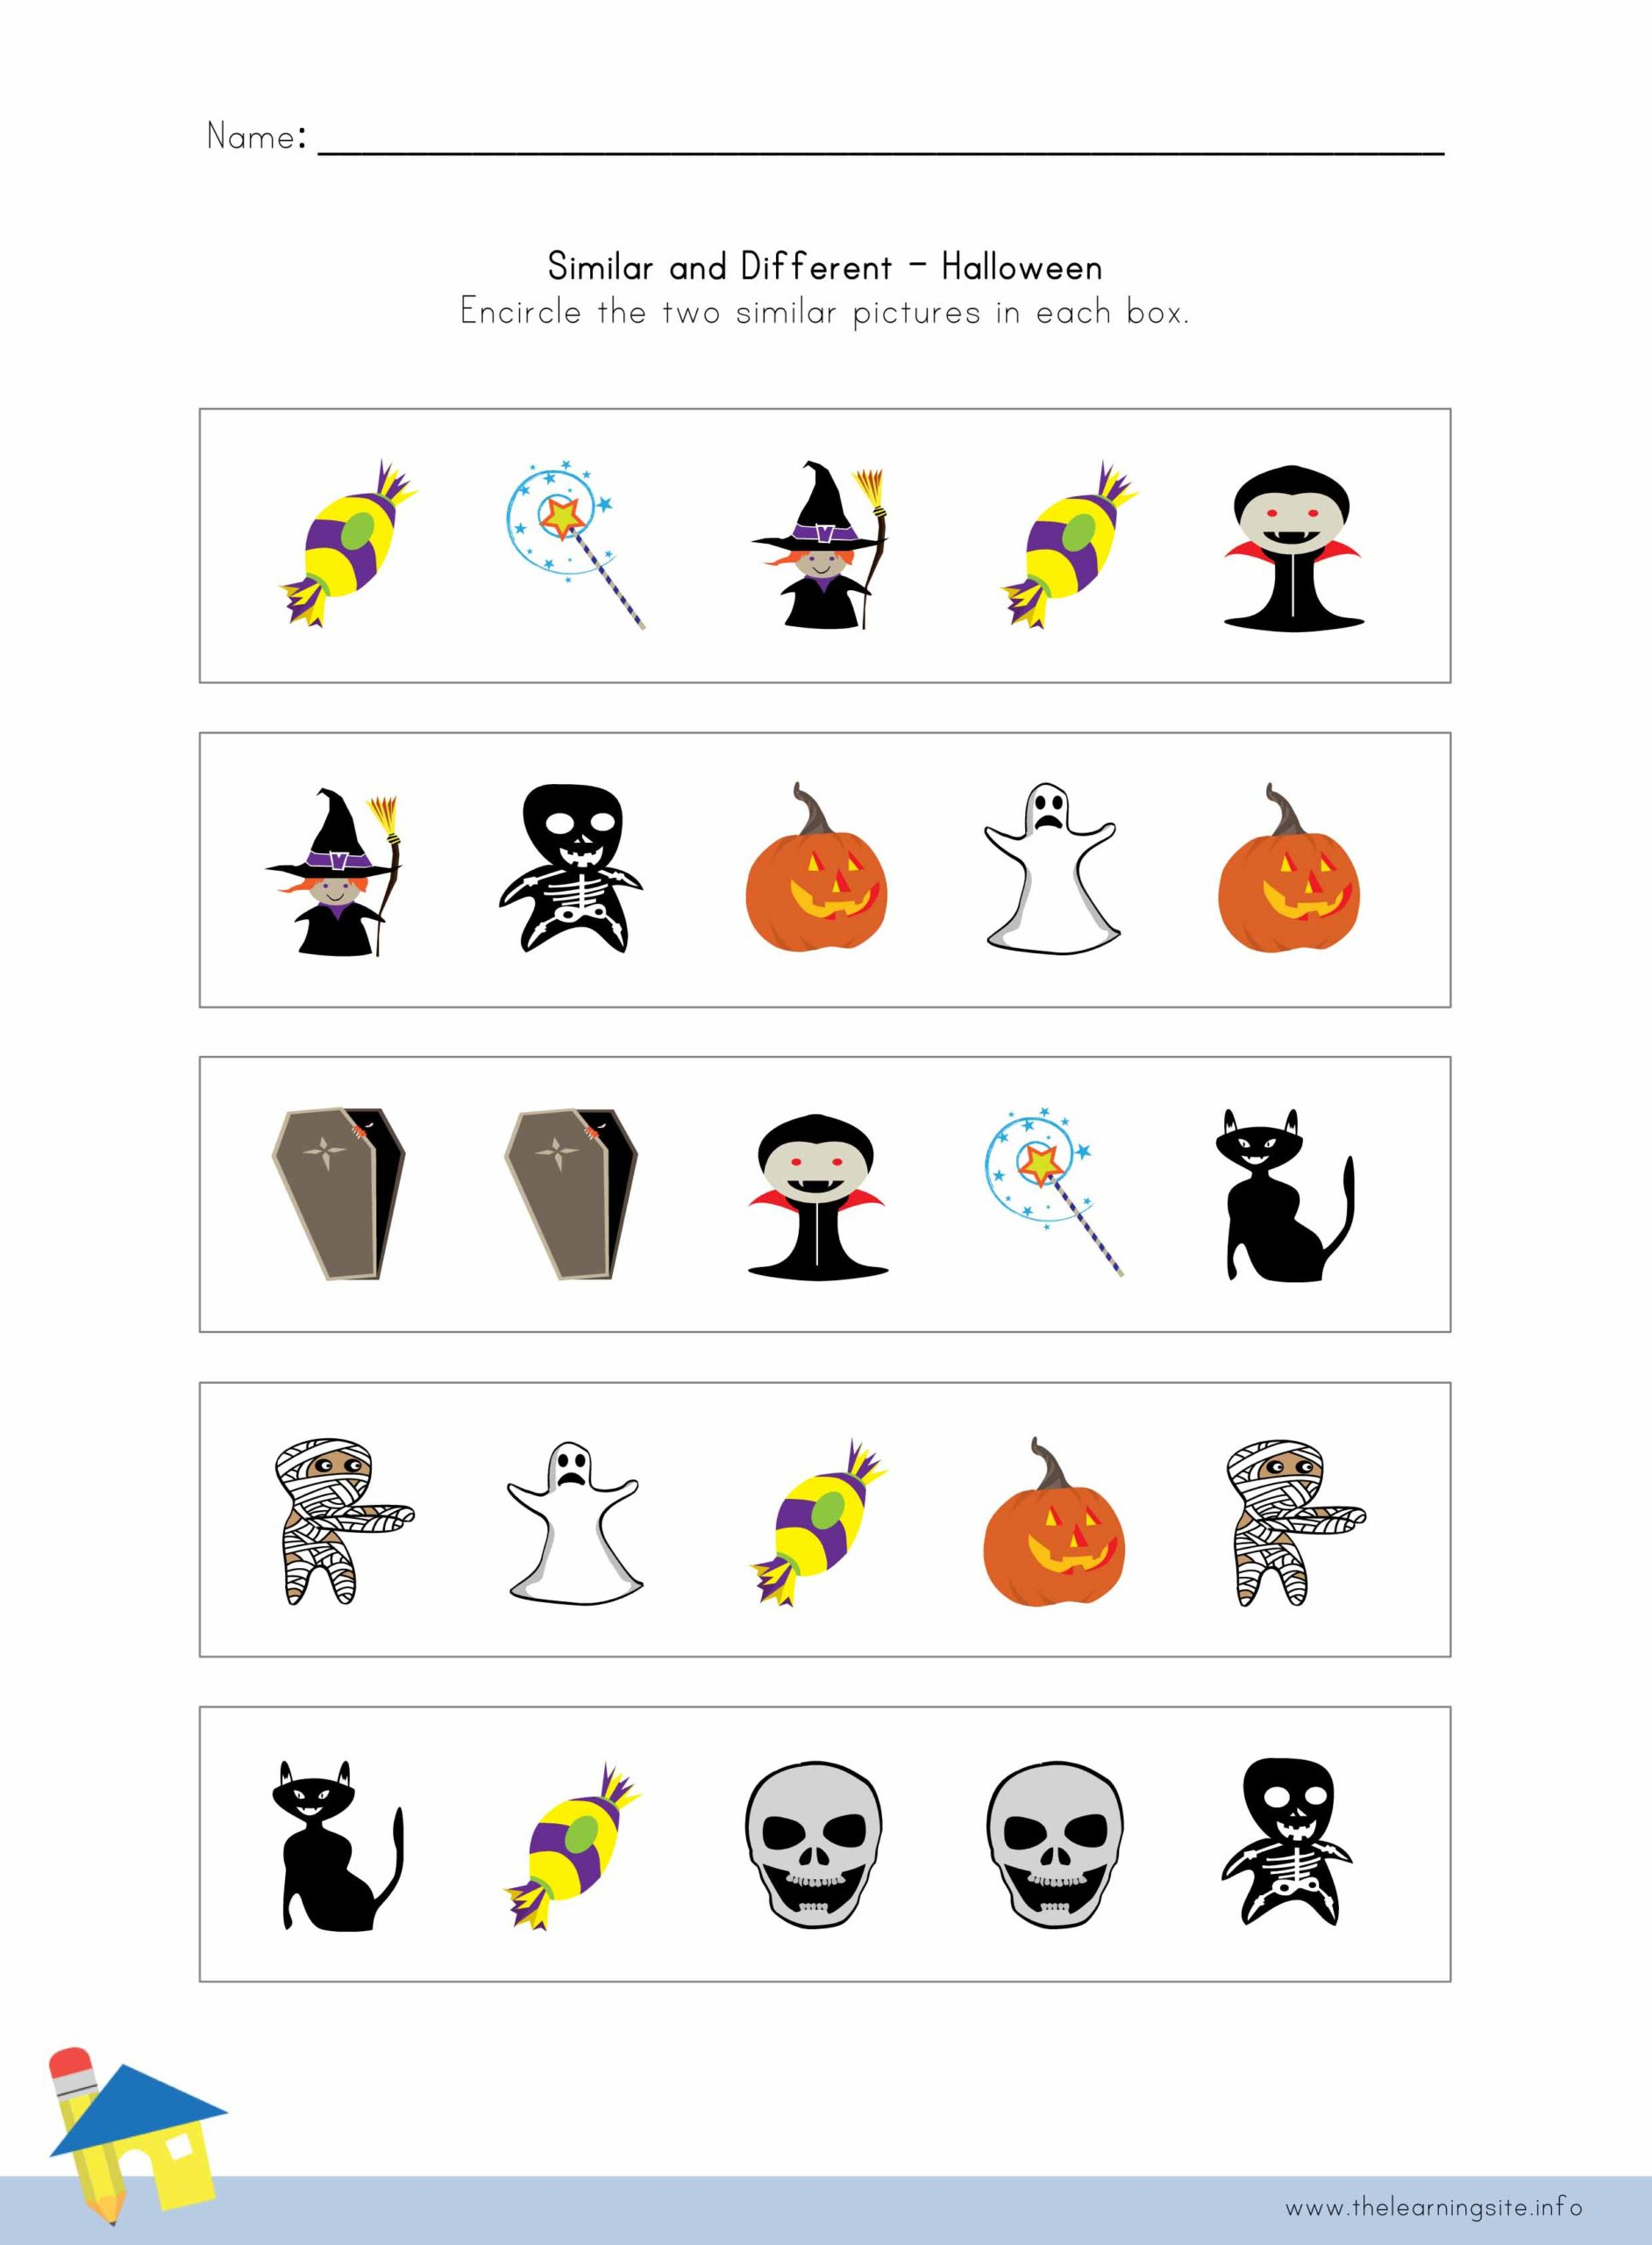 Halloween Similar And Different Worksheet 3 – The Learning Site